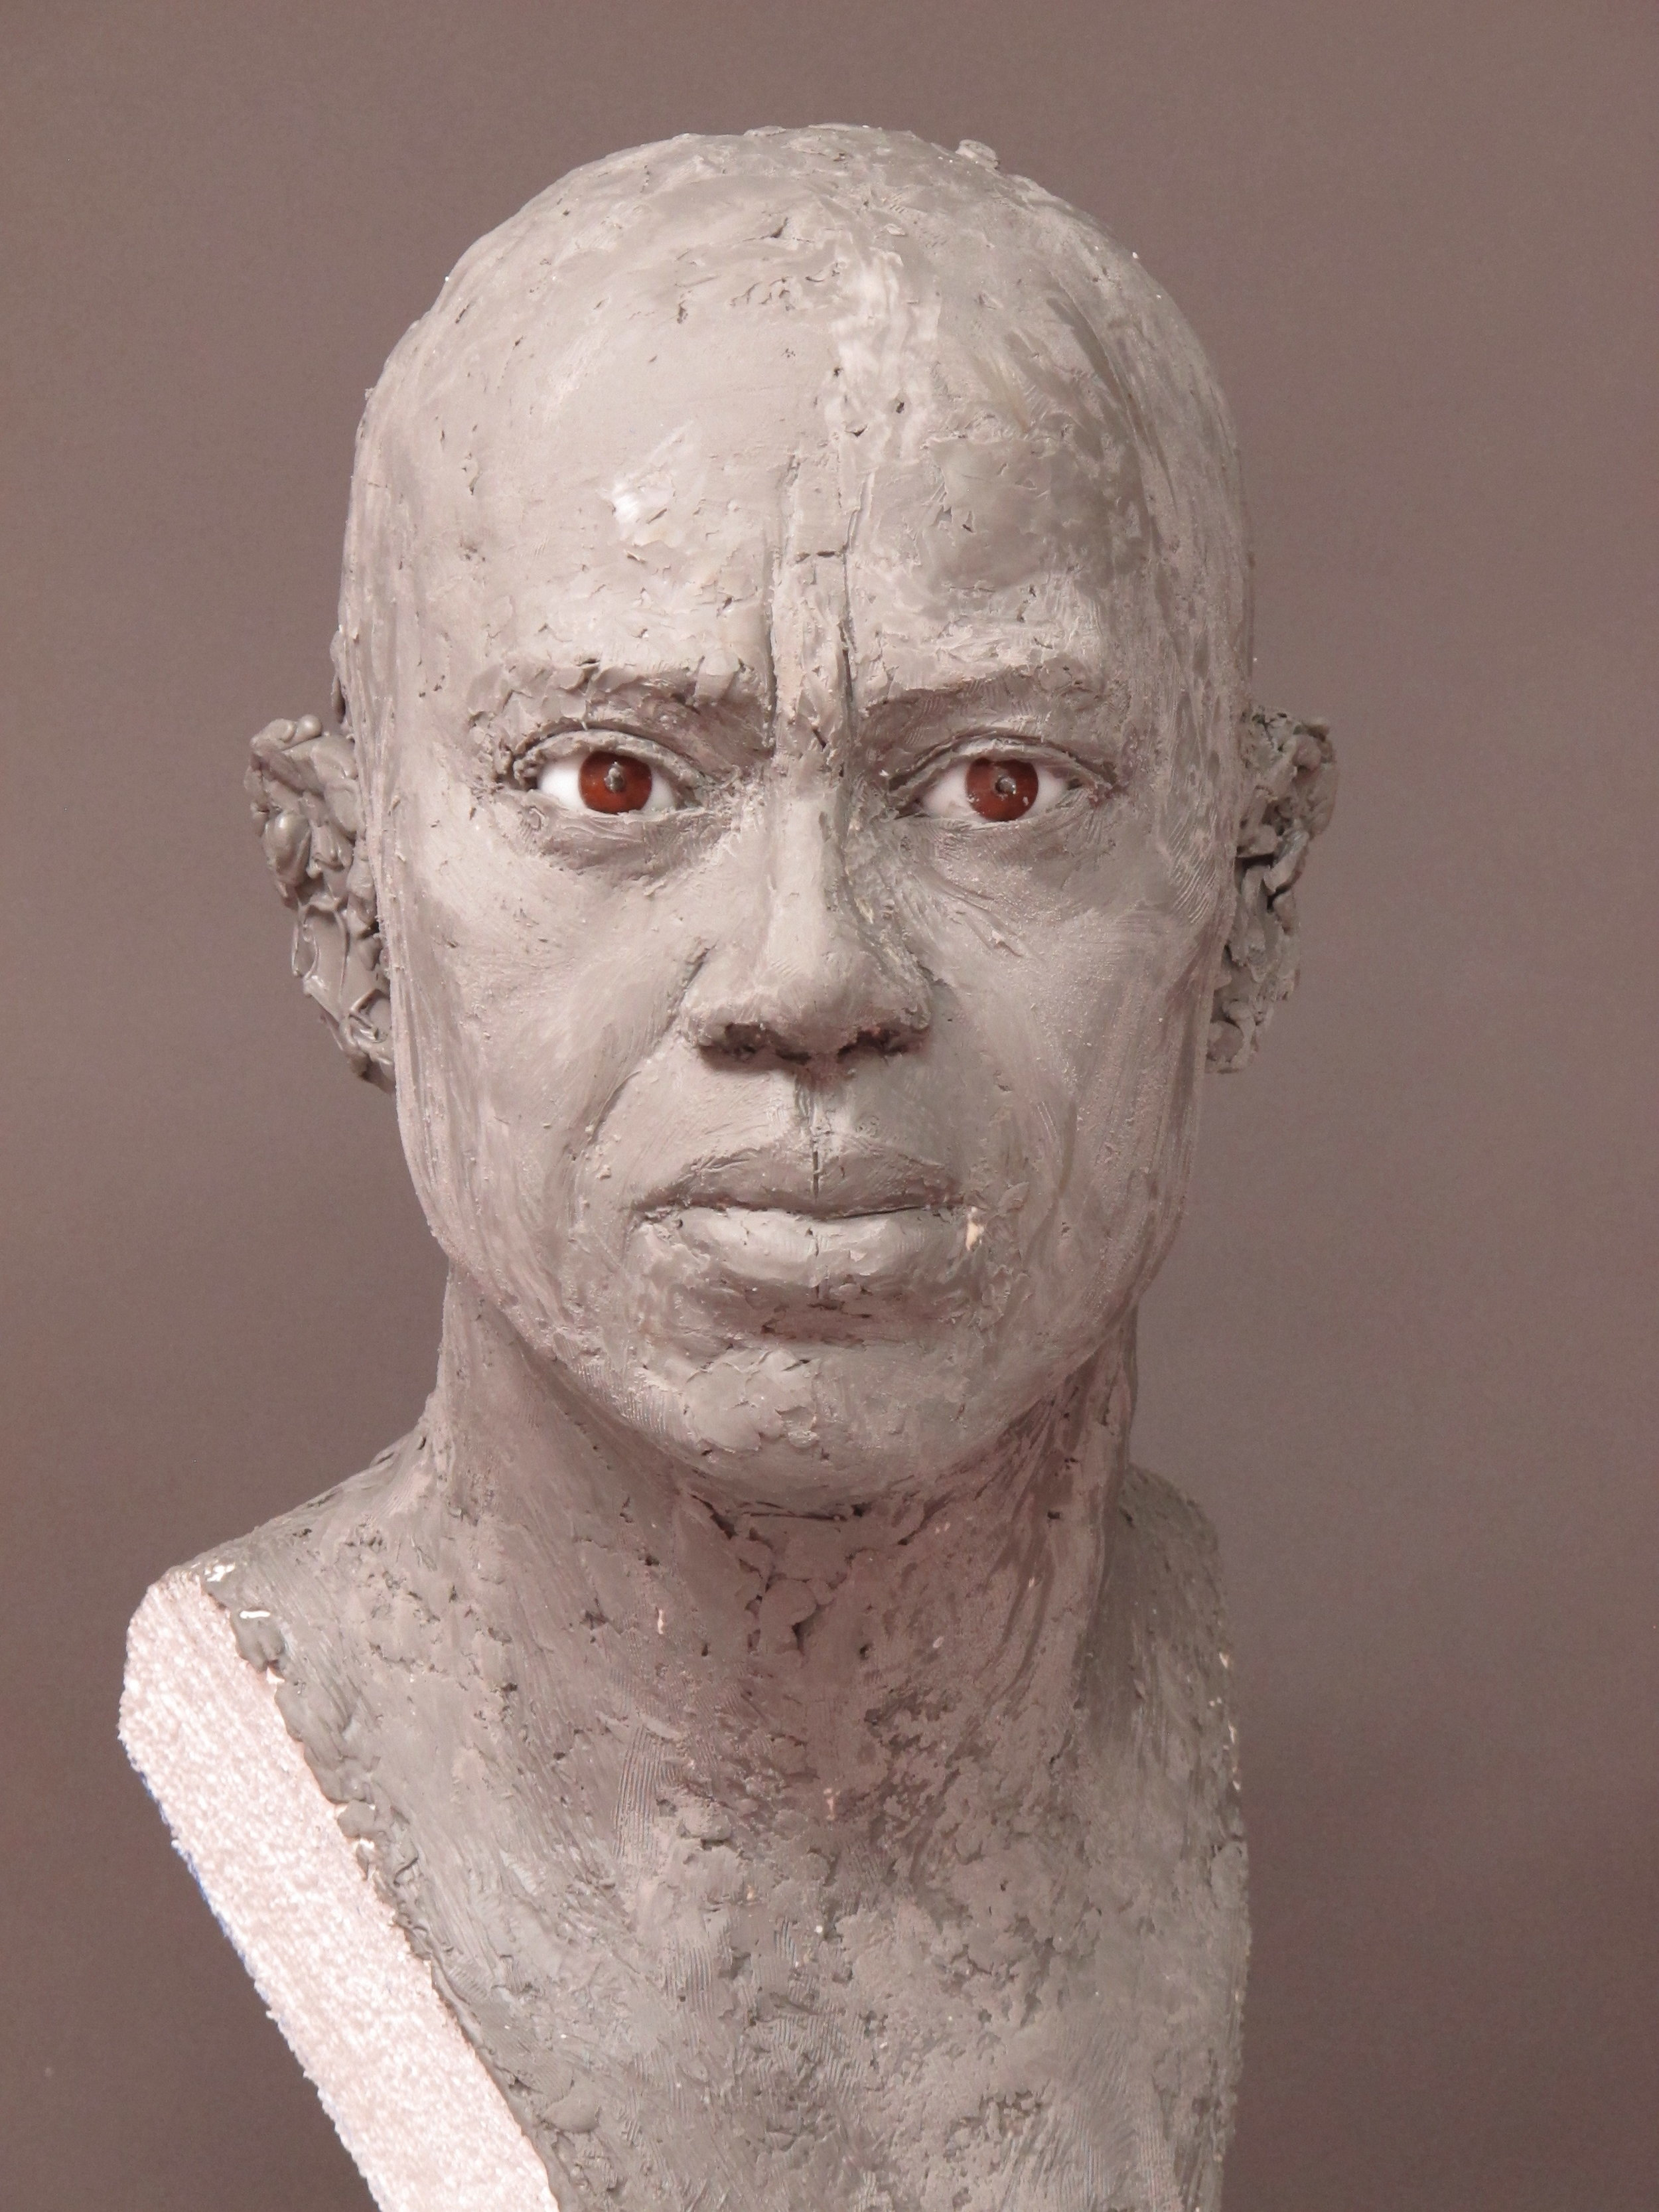 Tiger Woods - Clay sculpture by Eric Saint Chaffray - Credit Musée Grévin